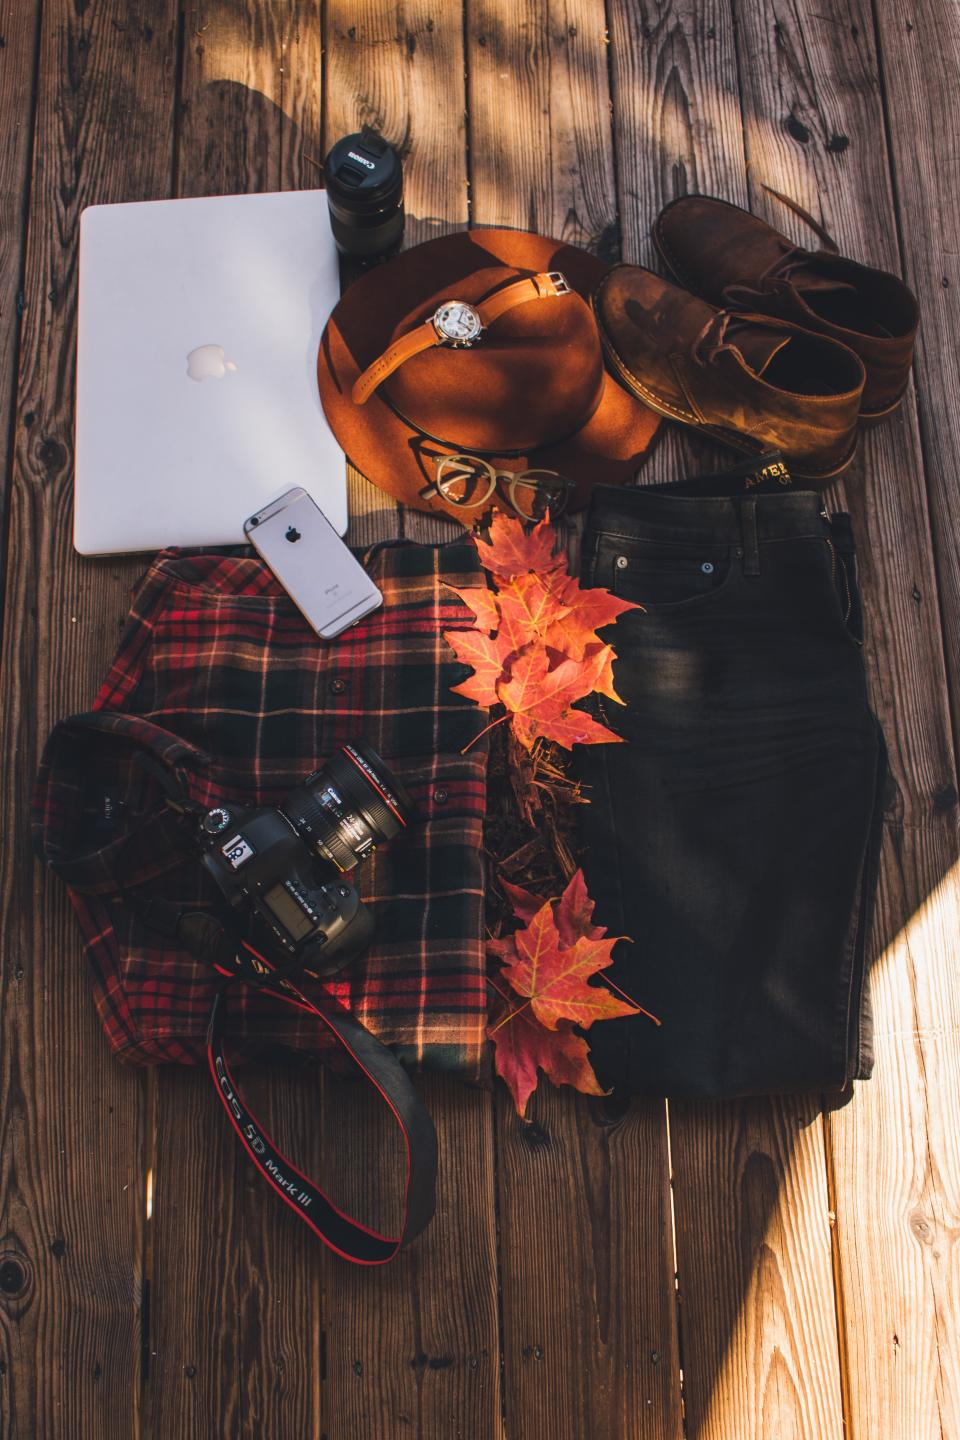 iphone laptop computer ipad camera jeans blouse hat cap watch shoes lens leaf autumn business work sunlight photography